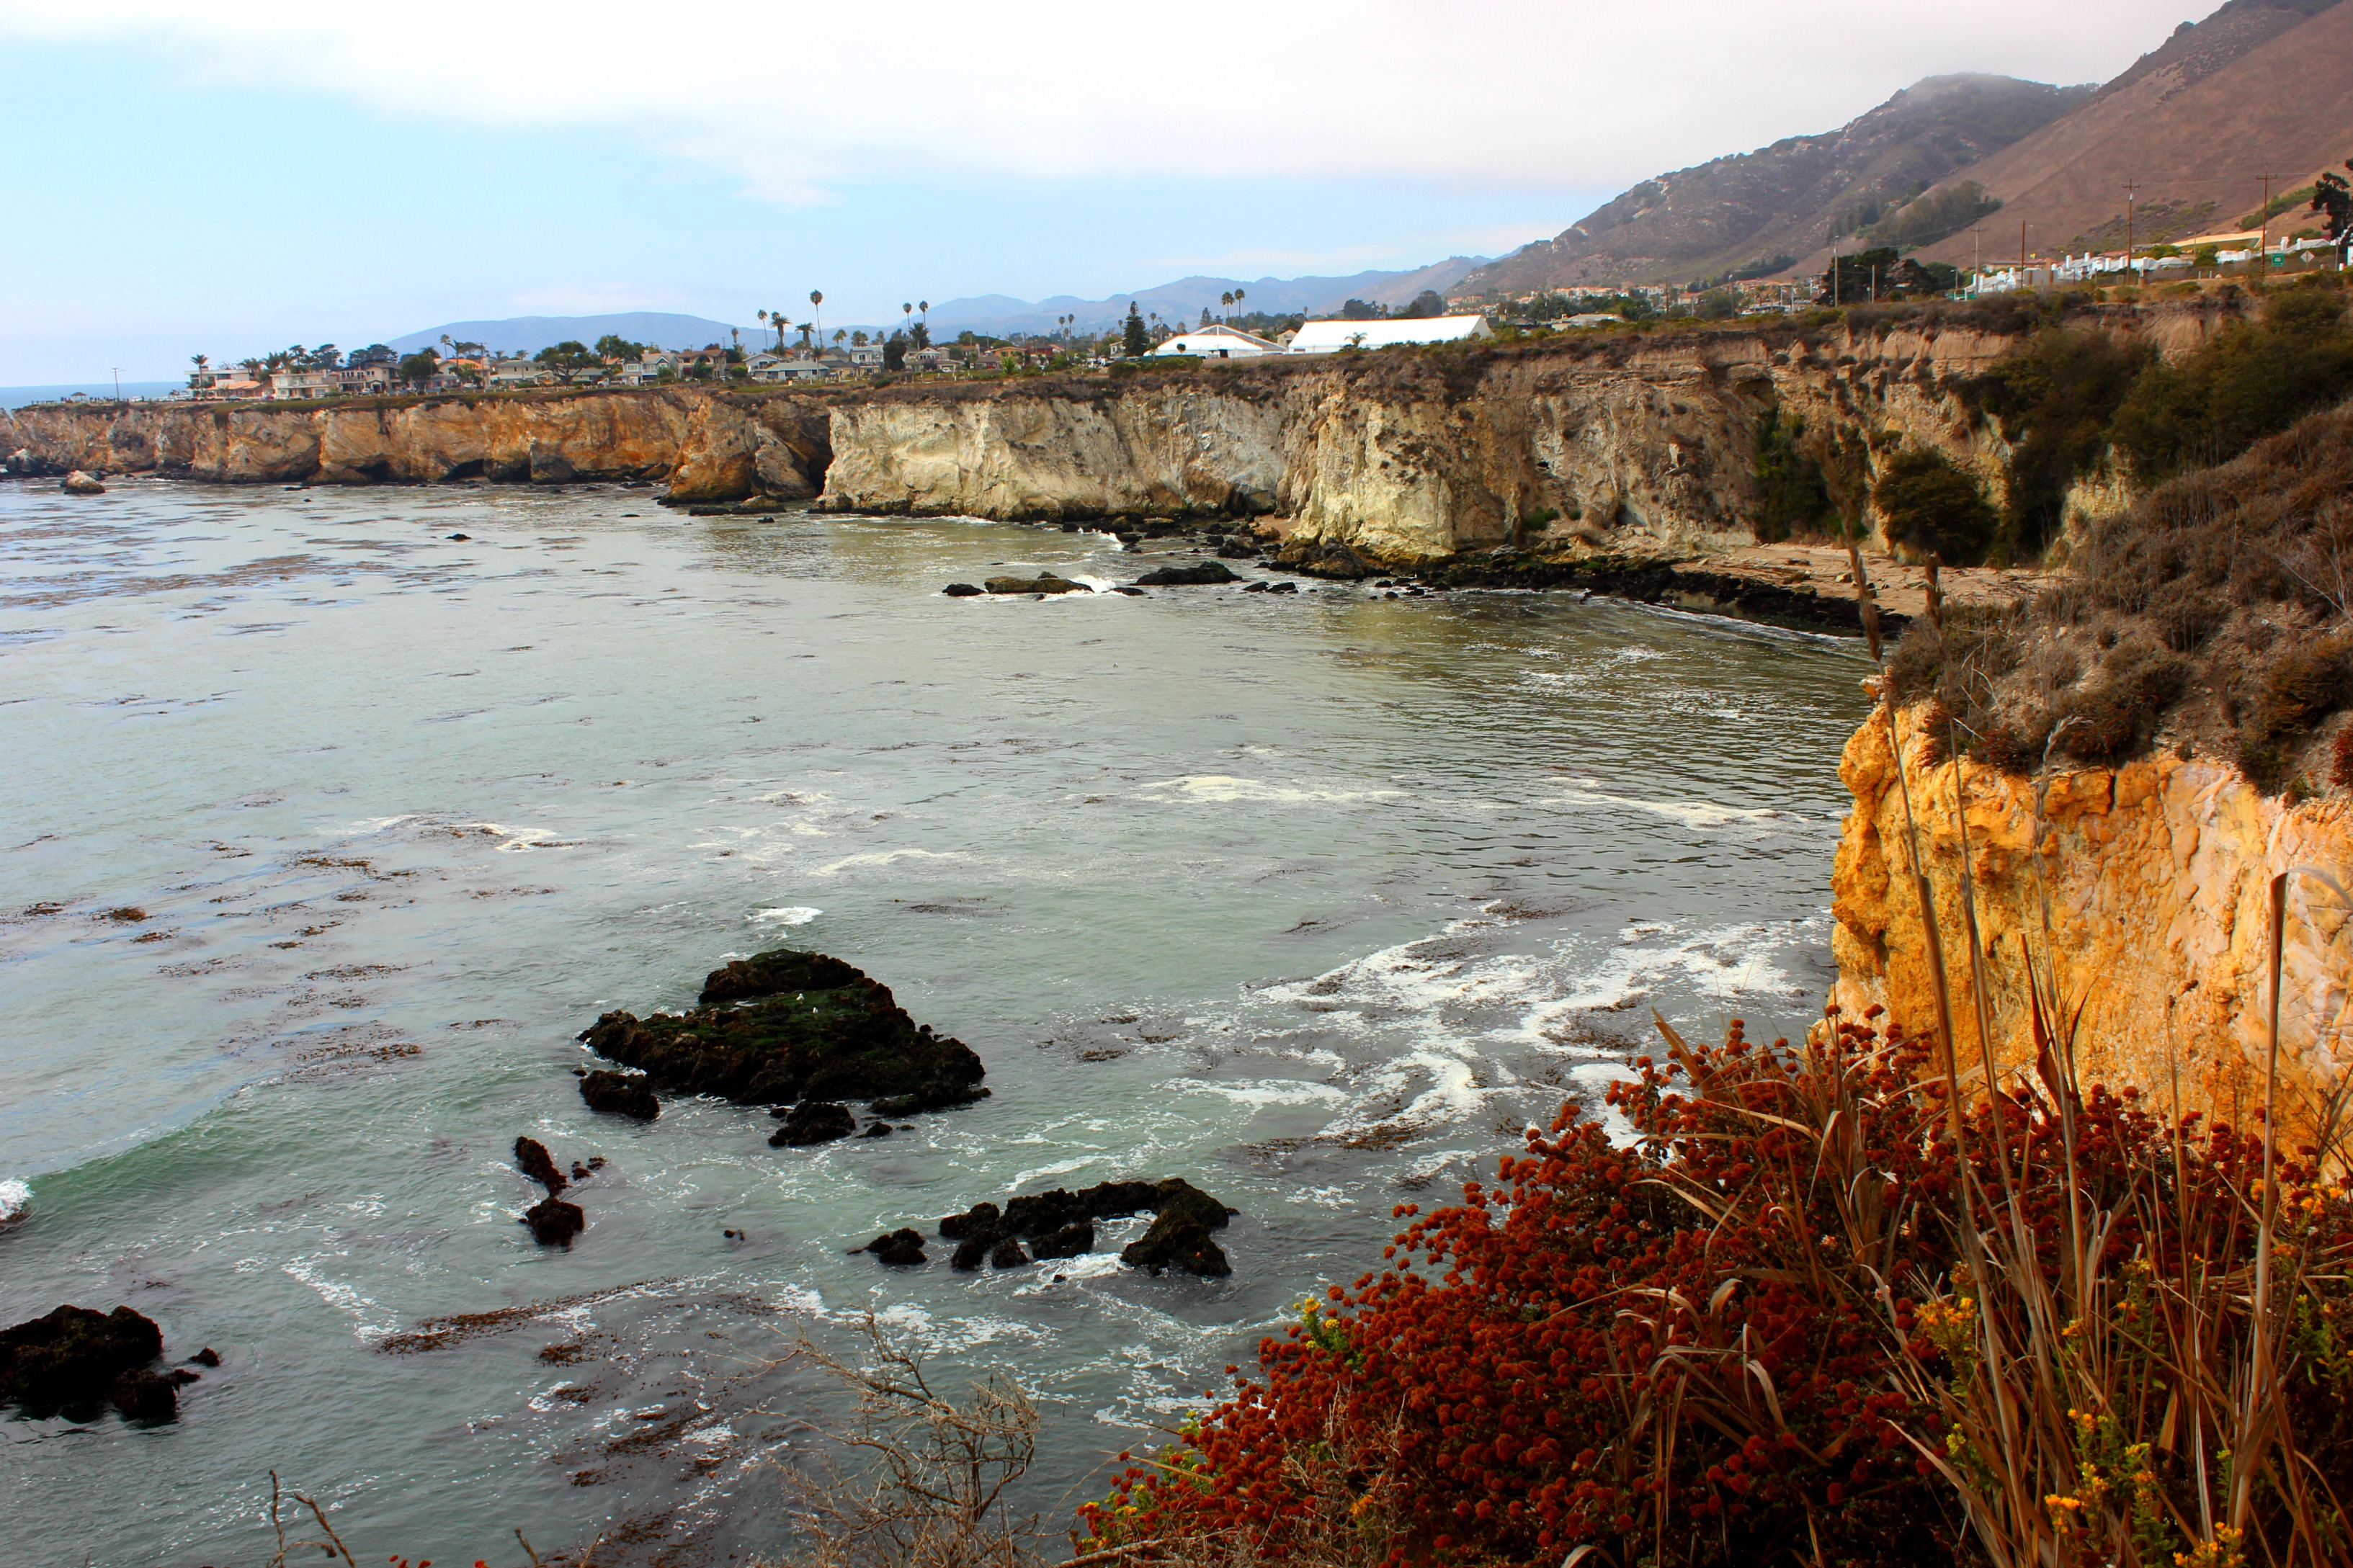 Afternoon delight: the cliffs of Pismo Beach, CA USA | Gone